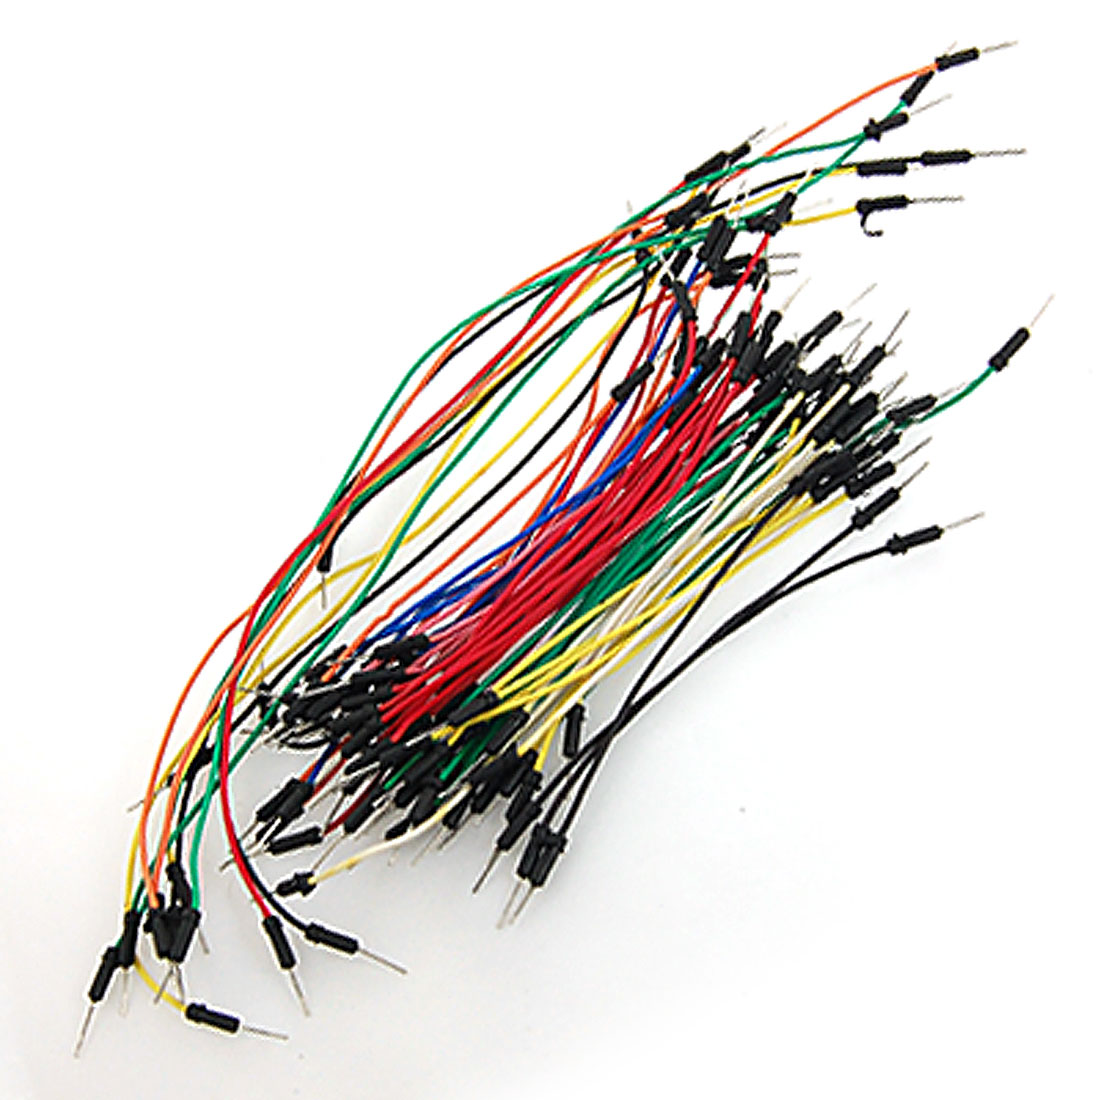 65 Pcs Assorted Length Multicolored Flexible Solderless Breadboard Jumper Wires